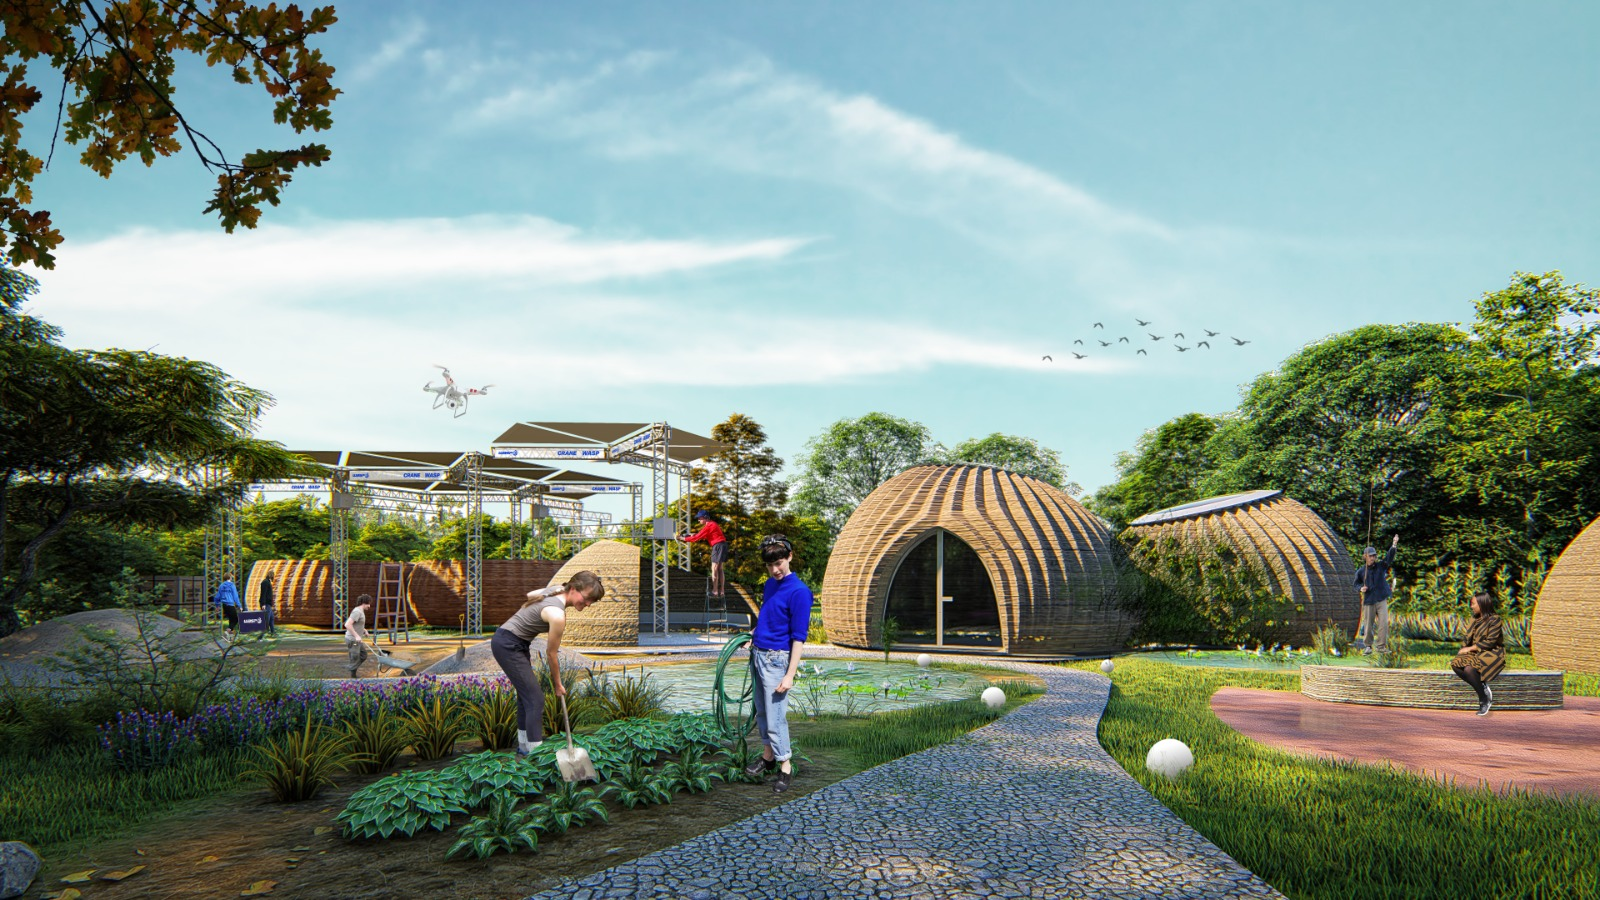 tecla 3d printed habitat by mario cucinella architects and wasp